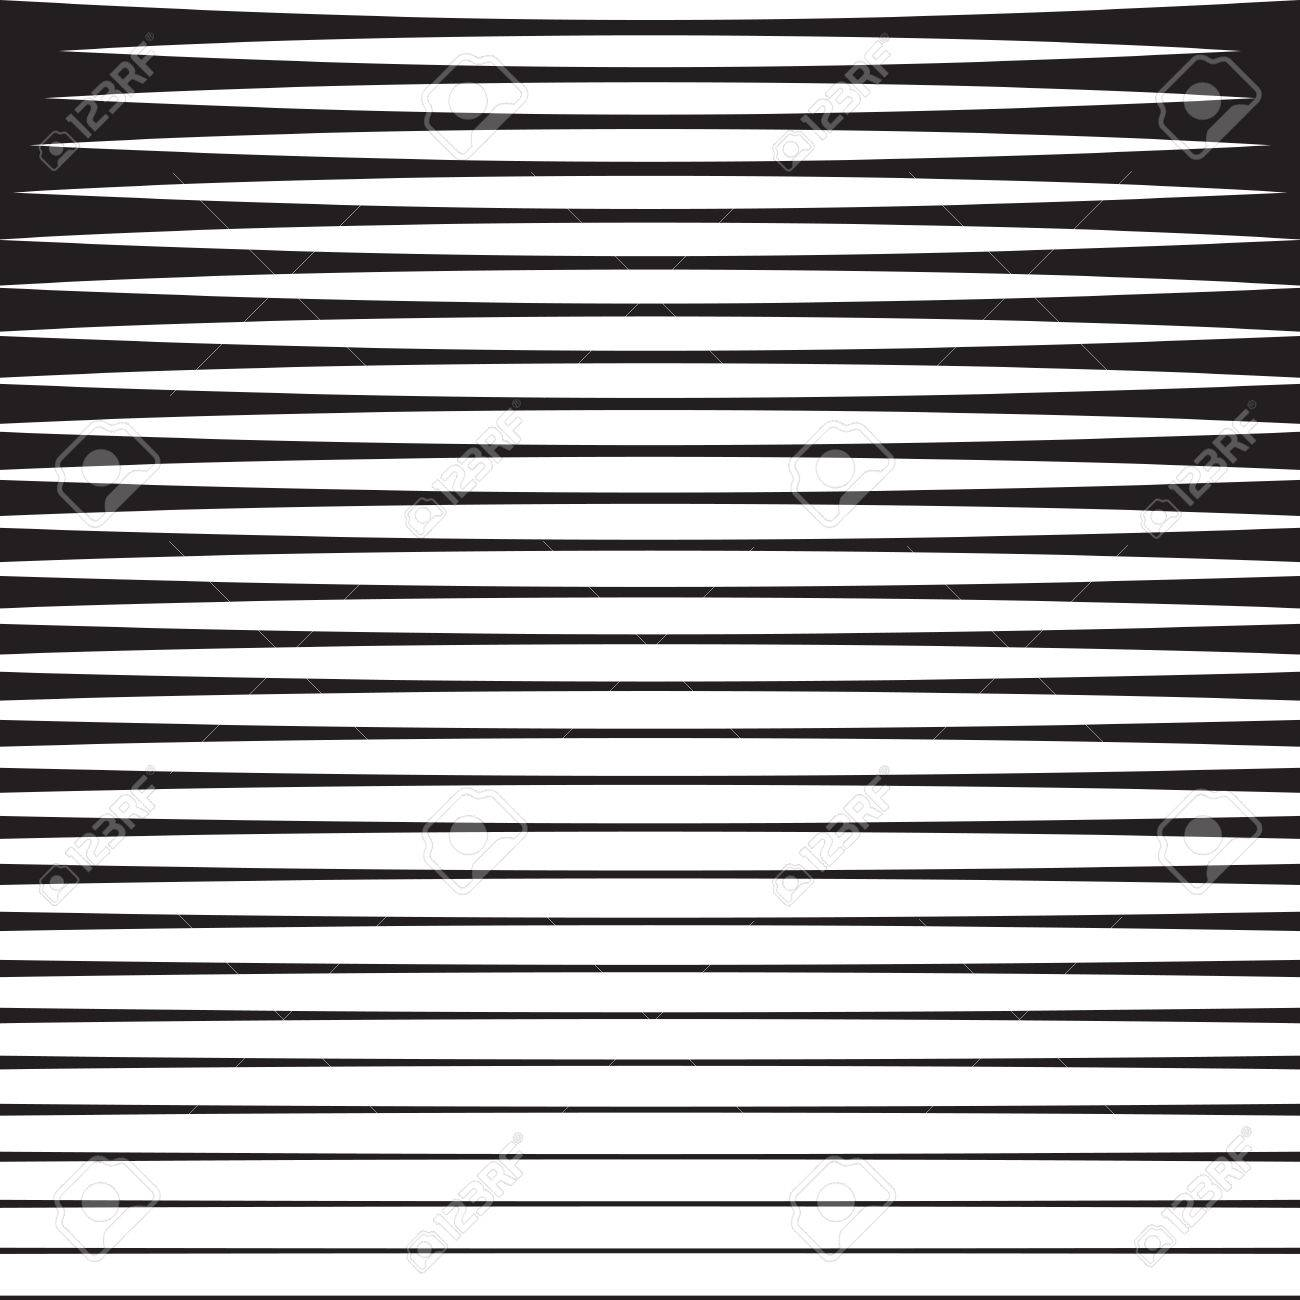 line halftone pattern with gradient effect horizontal lines